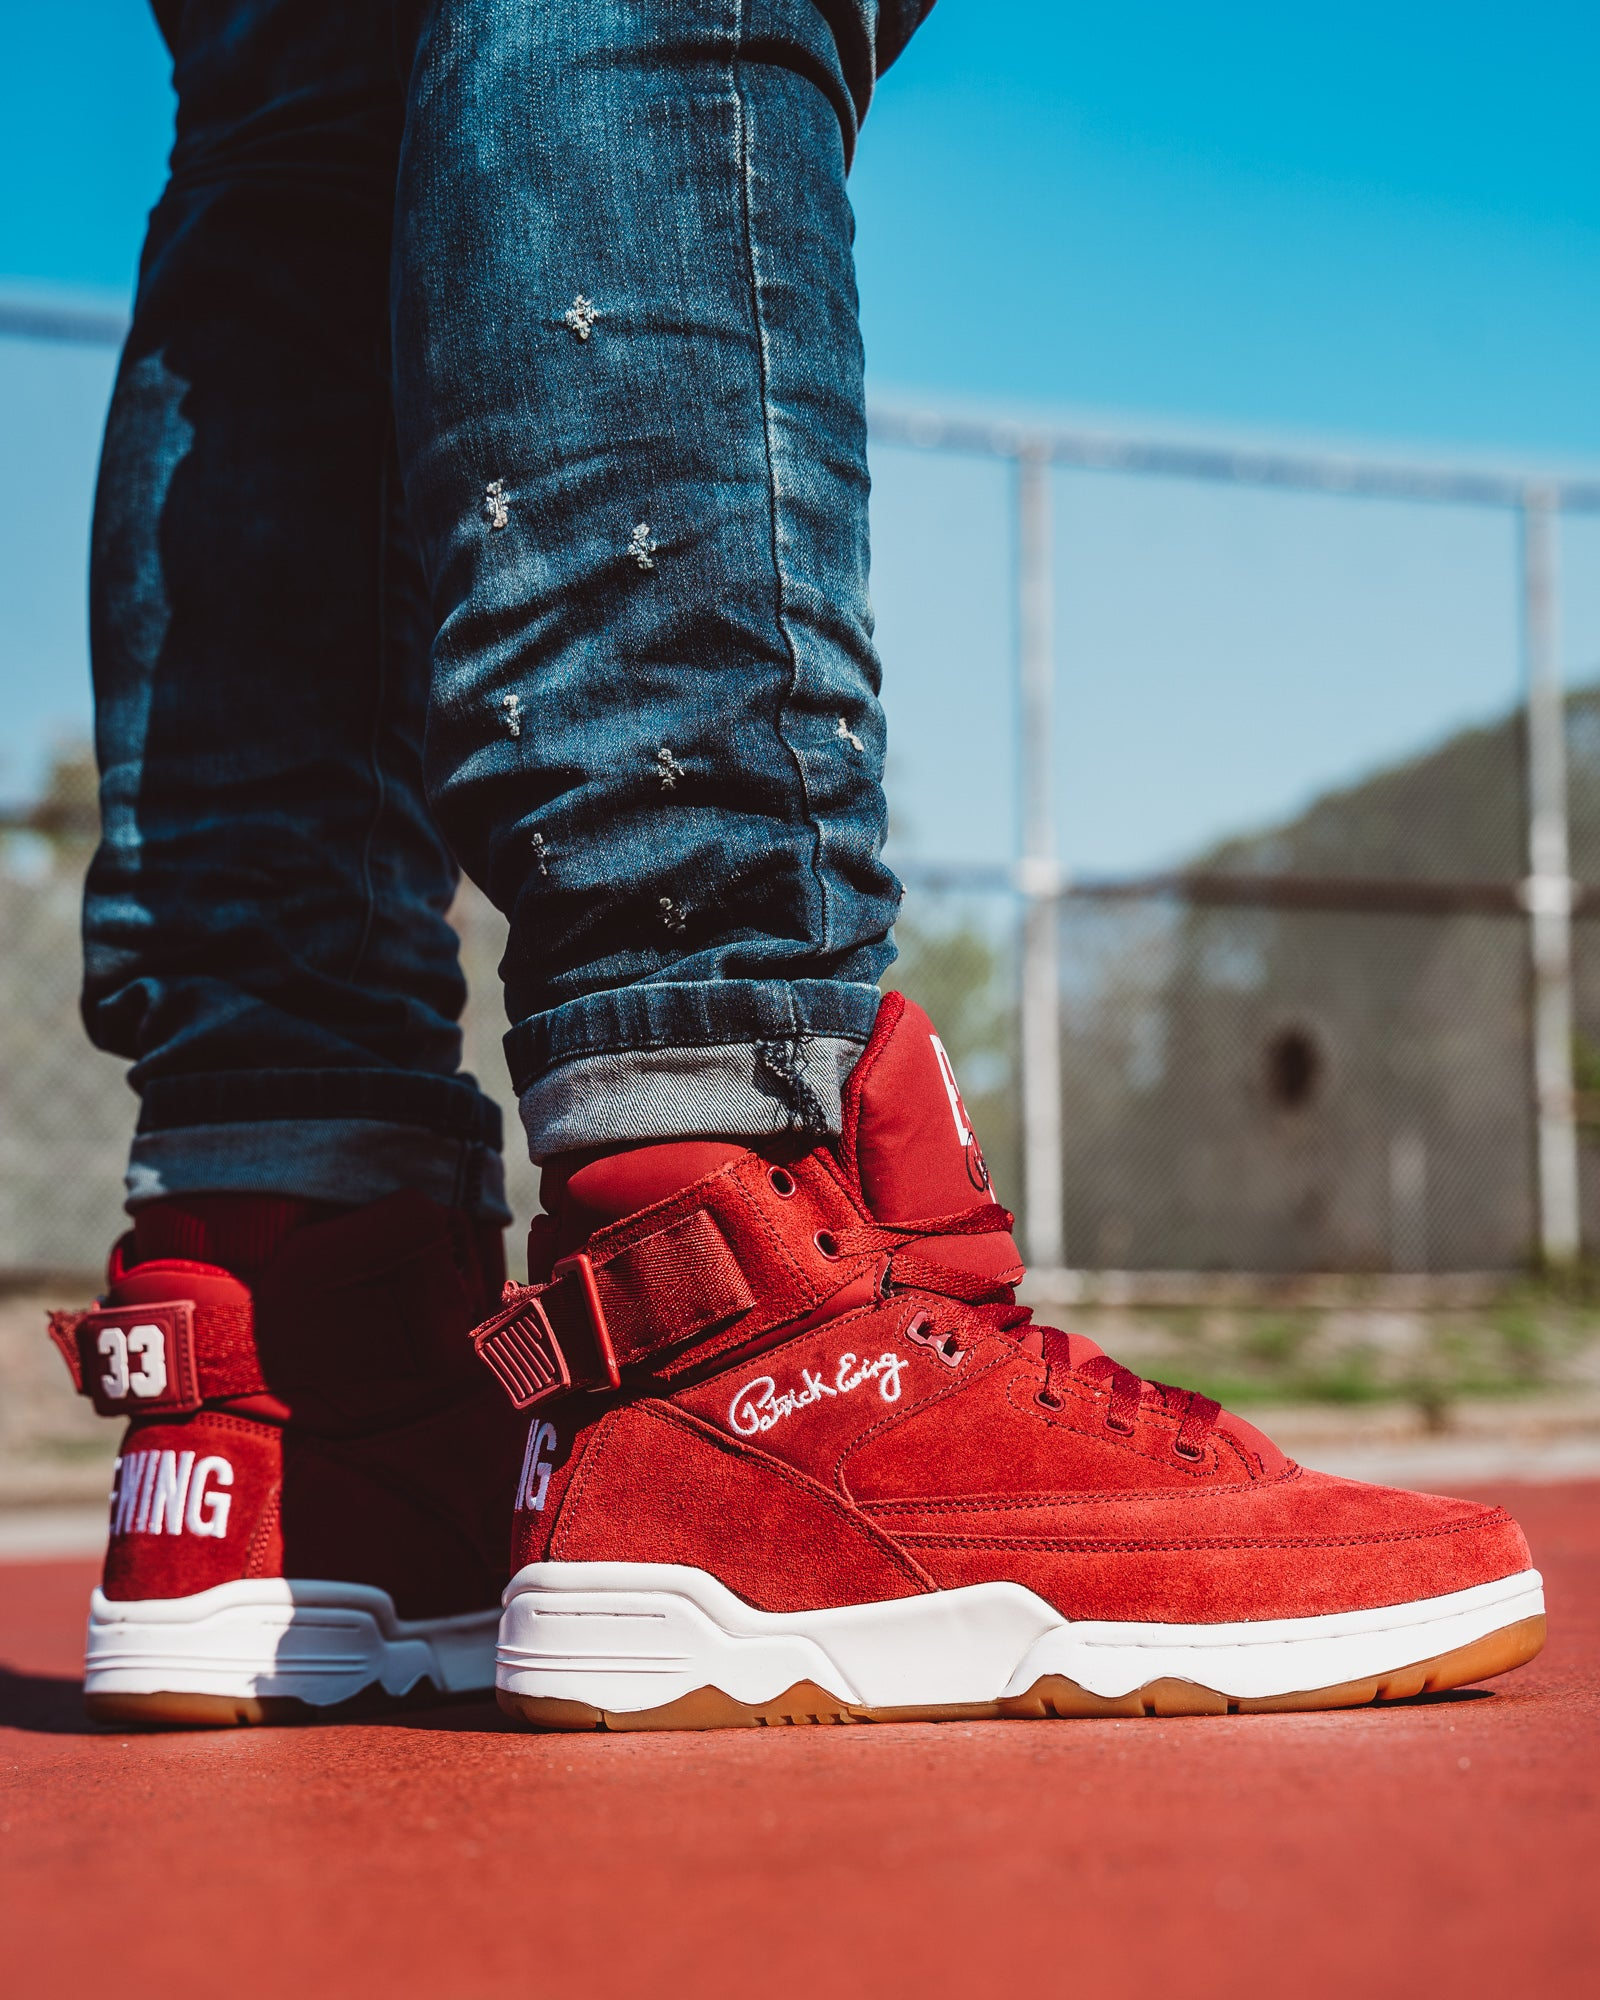 33 HI Biking Red/Gum/White